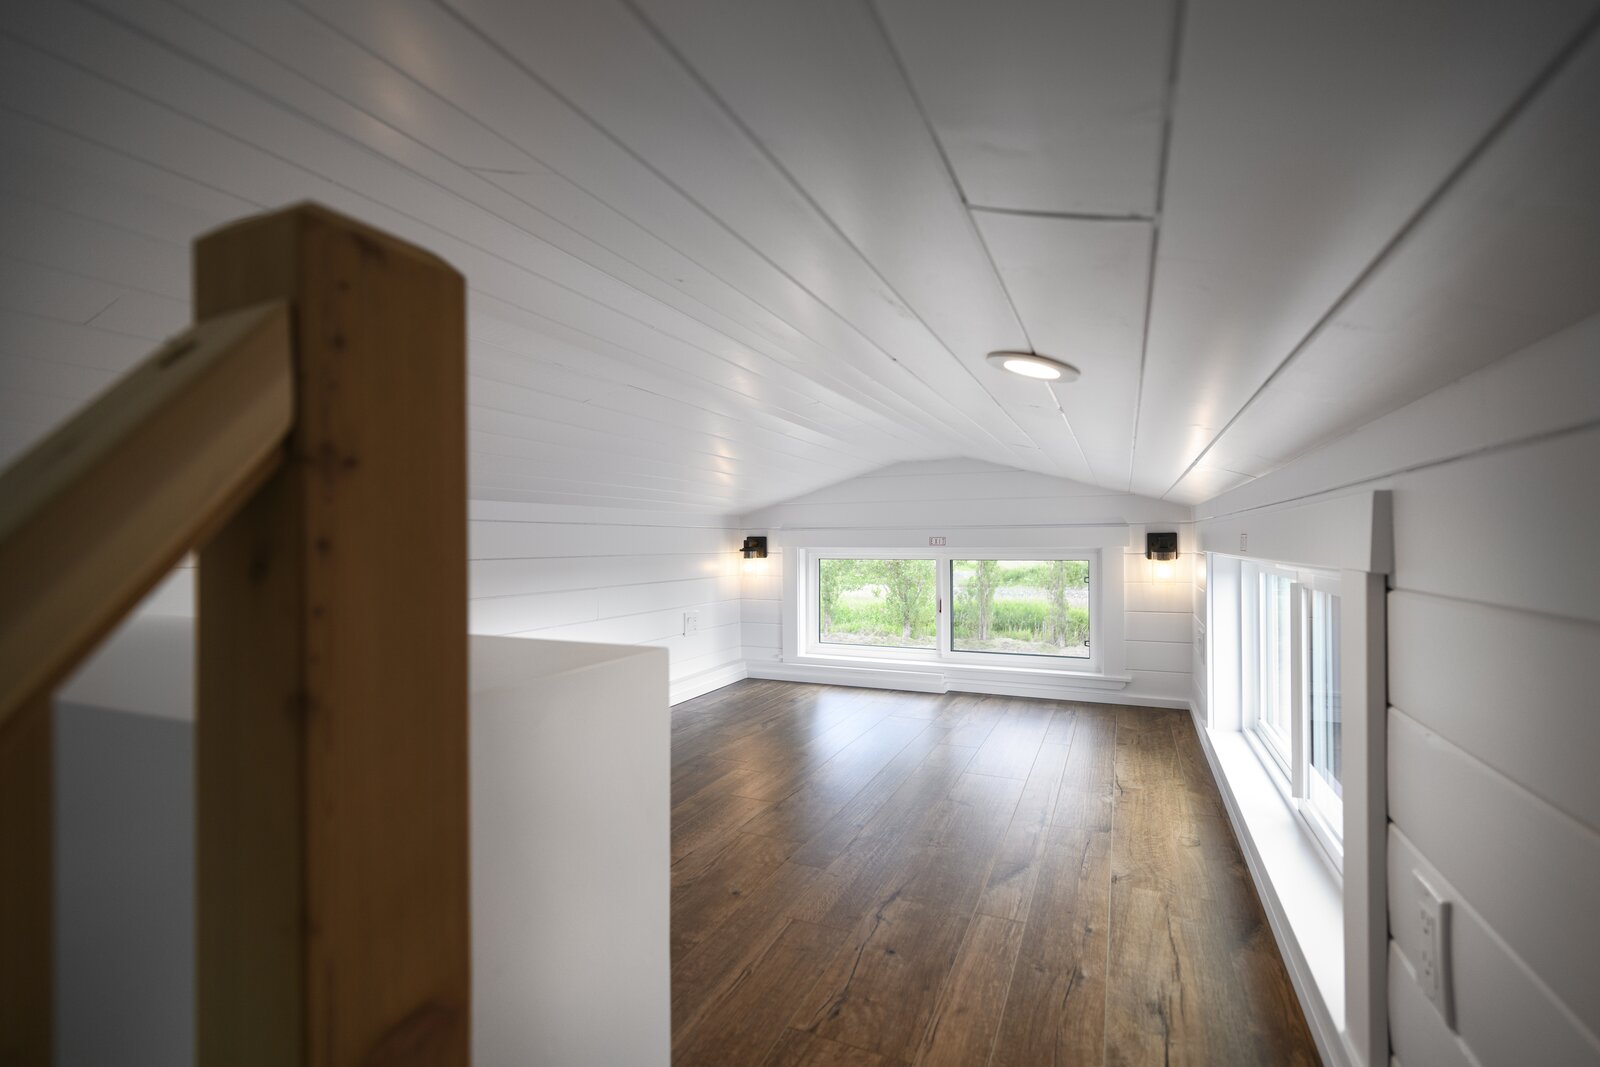 Bedroom, Ceiling Lighting, and Vinyl Floor The sleeping lofts are flooded with natural sunlight thanks to multiple windows.  Photo 10 of 11 in One Family's 416-Square-Foot Digs Expand the Limits of Tiny Home Living